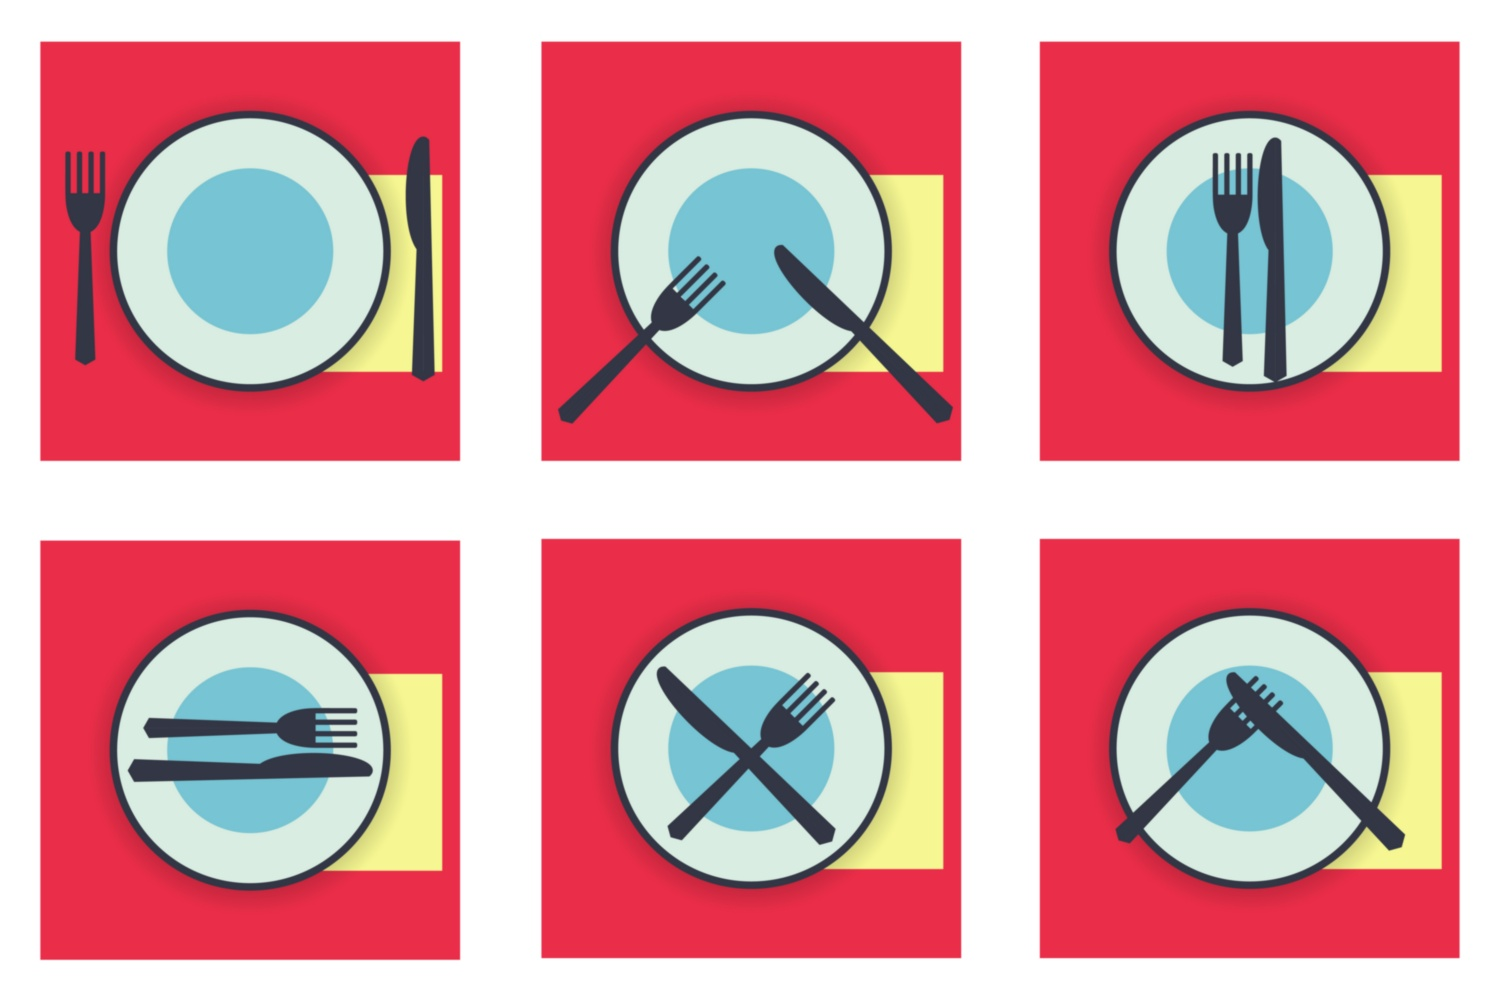 Download Free Table Etiquette Icons Set Knife And Fork Graphic By Kapitosh for Cricut Explore, Silhouette and other cutting machines.